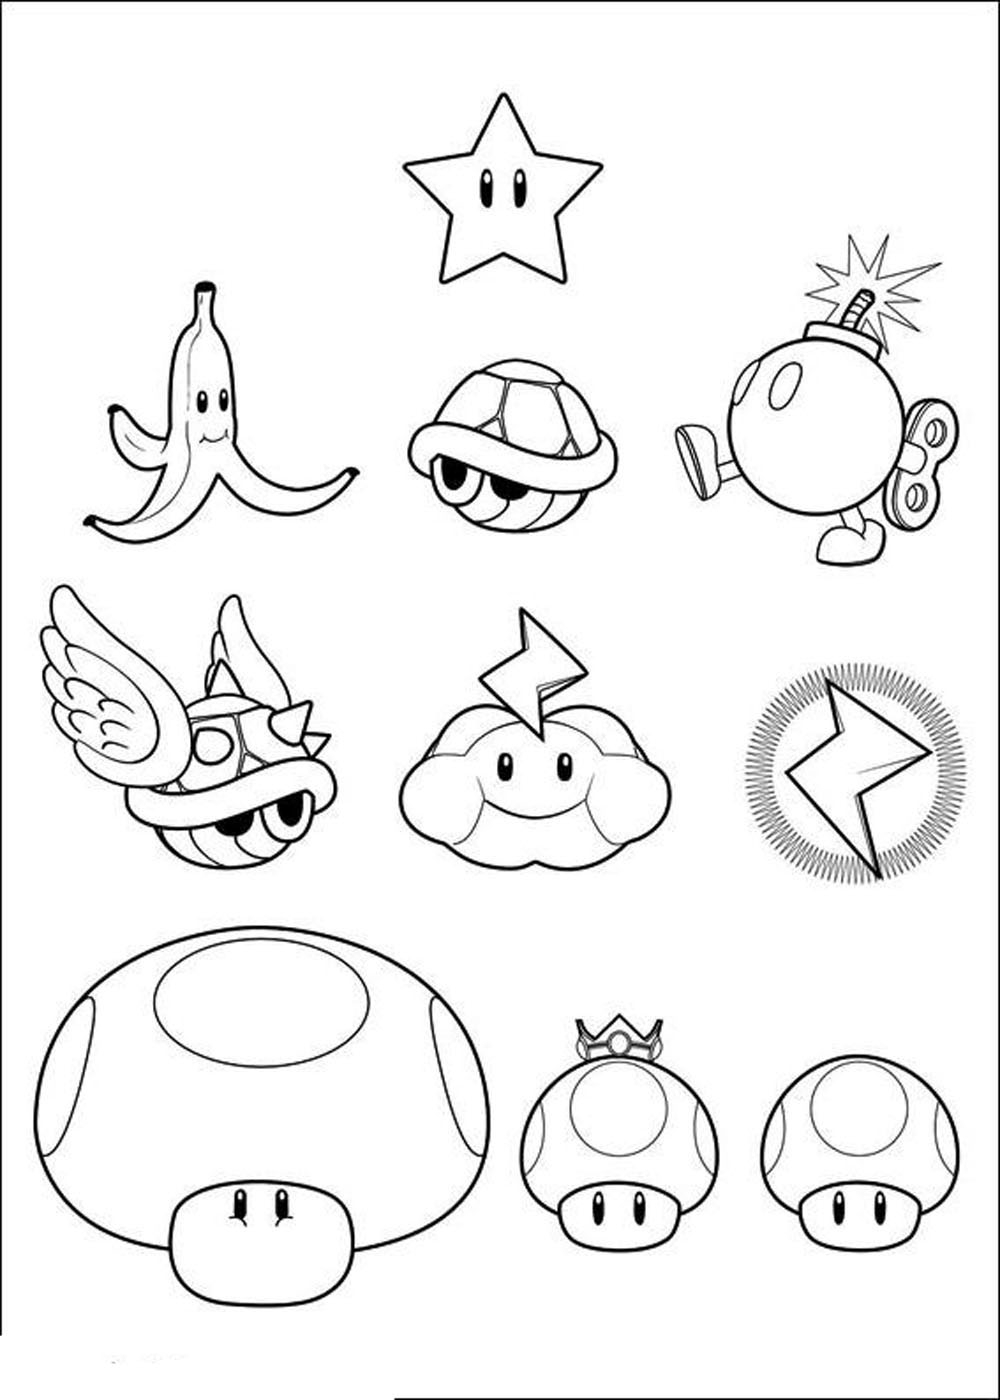 printable mario coloring pages - mario coloring pages themes